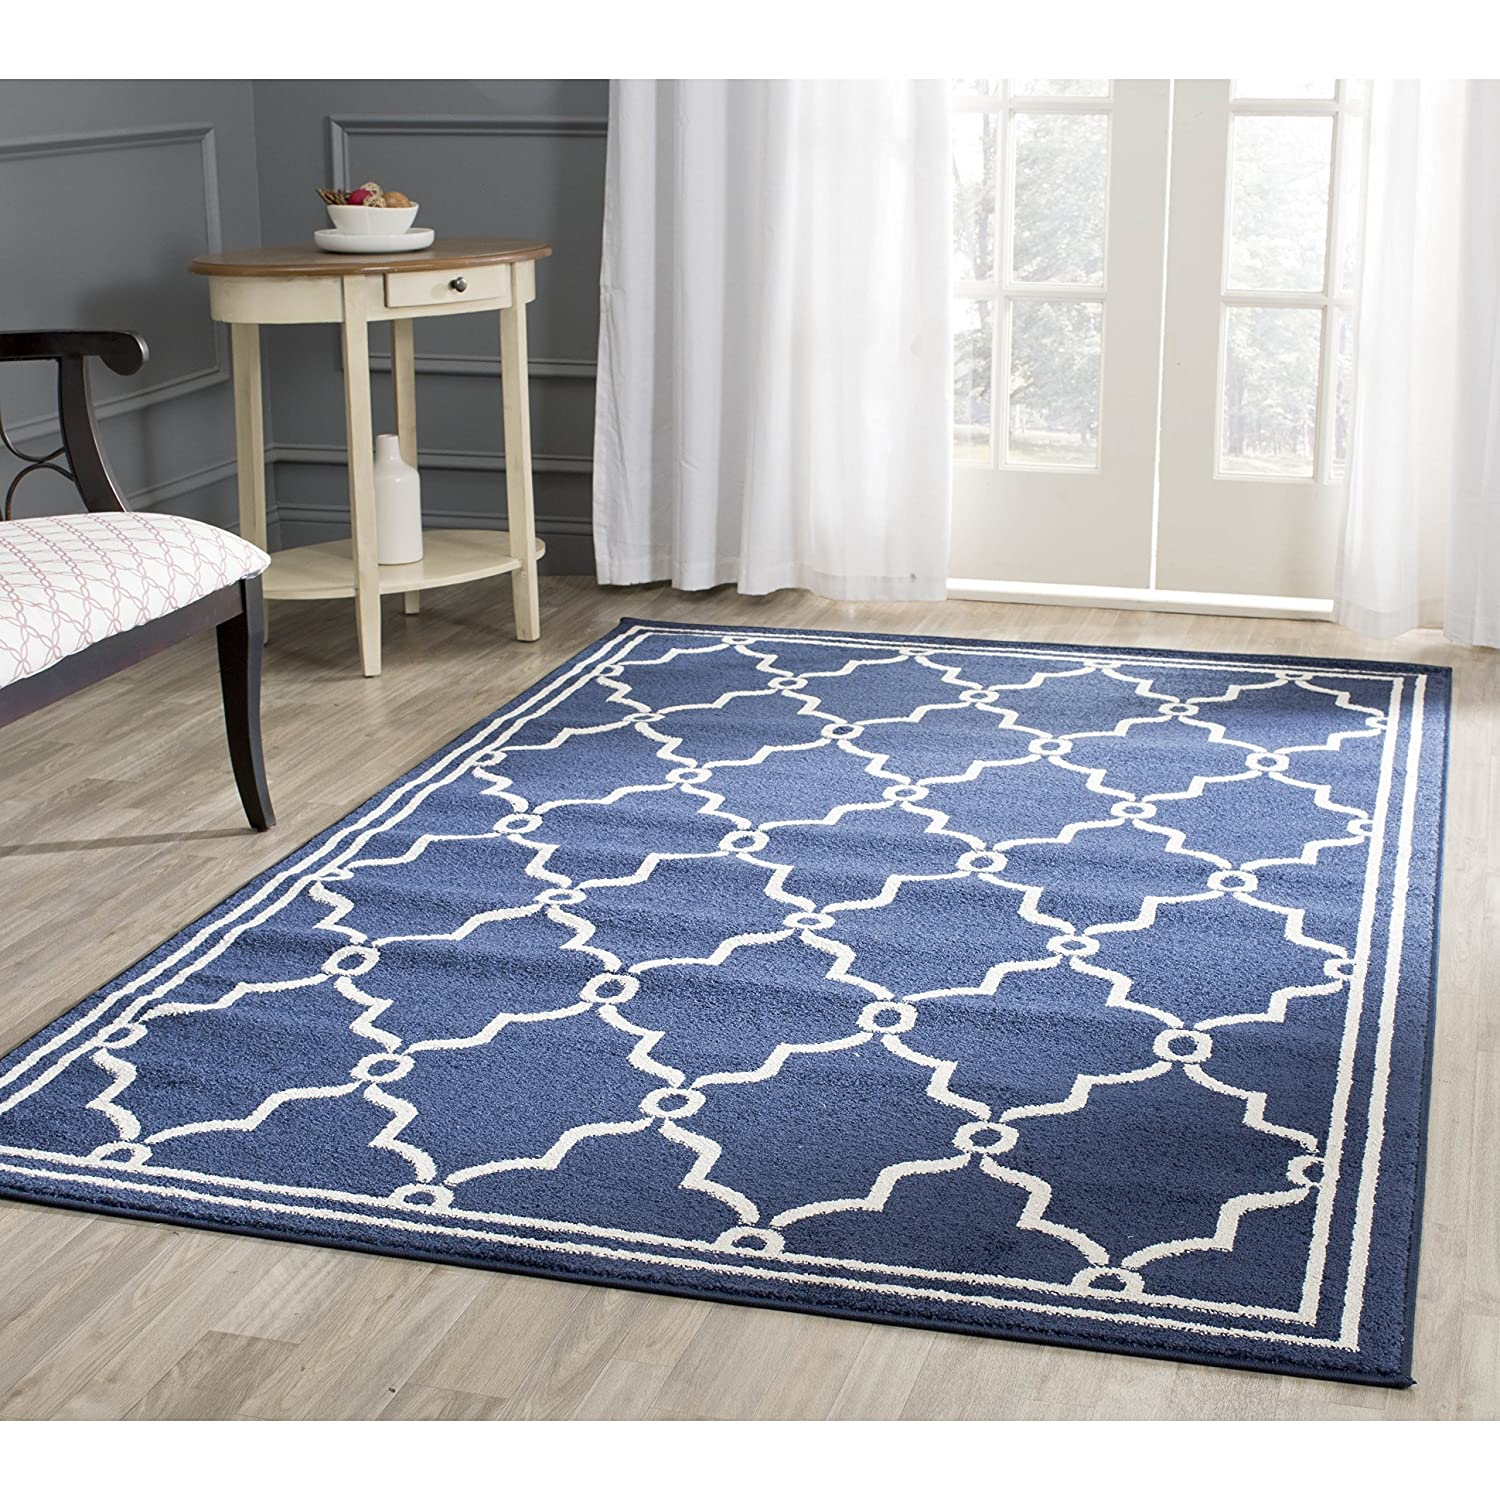 Amazon Safavieh Amherst Collection AMTP Navy and Beige